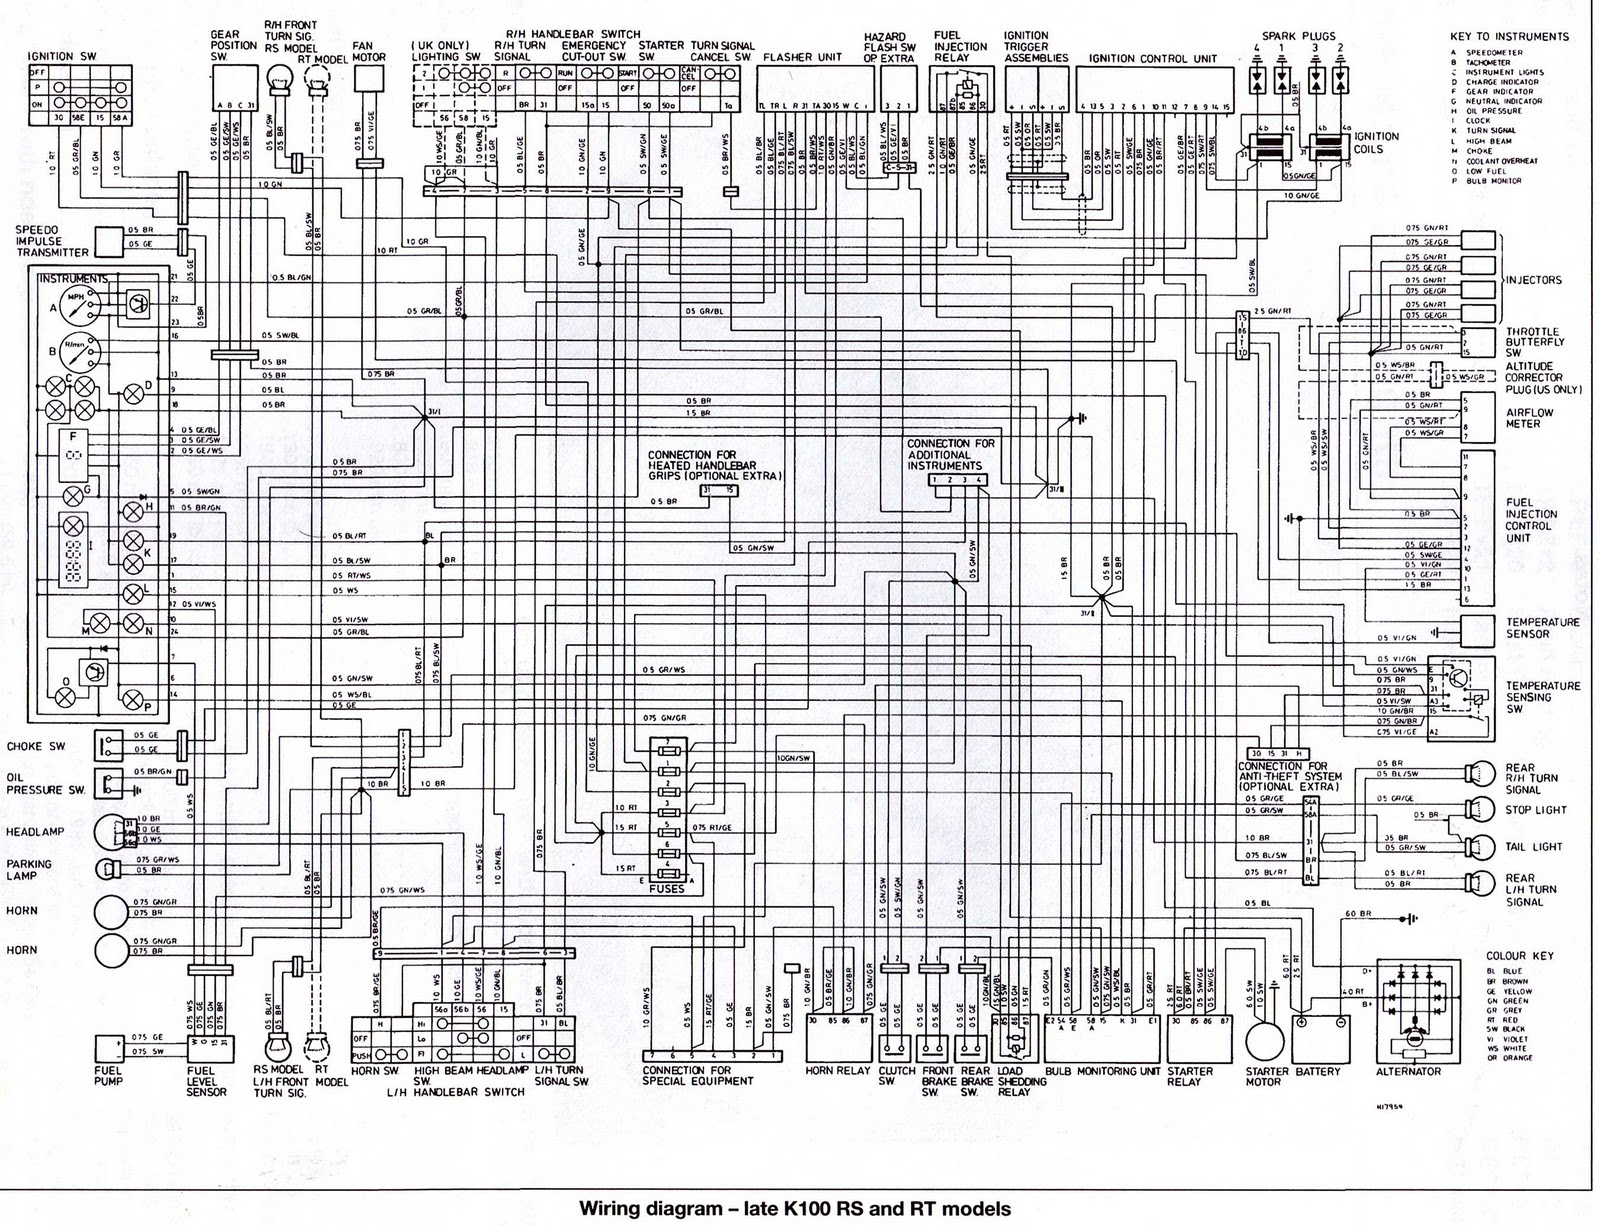 Bmw K100rs Wiring Diagram, Bmw, Free Engine Image For User